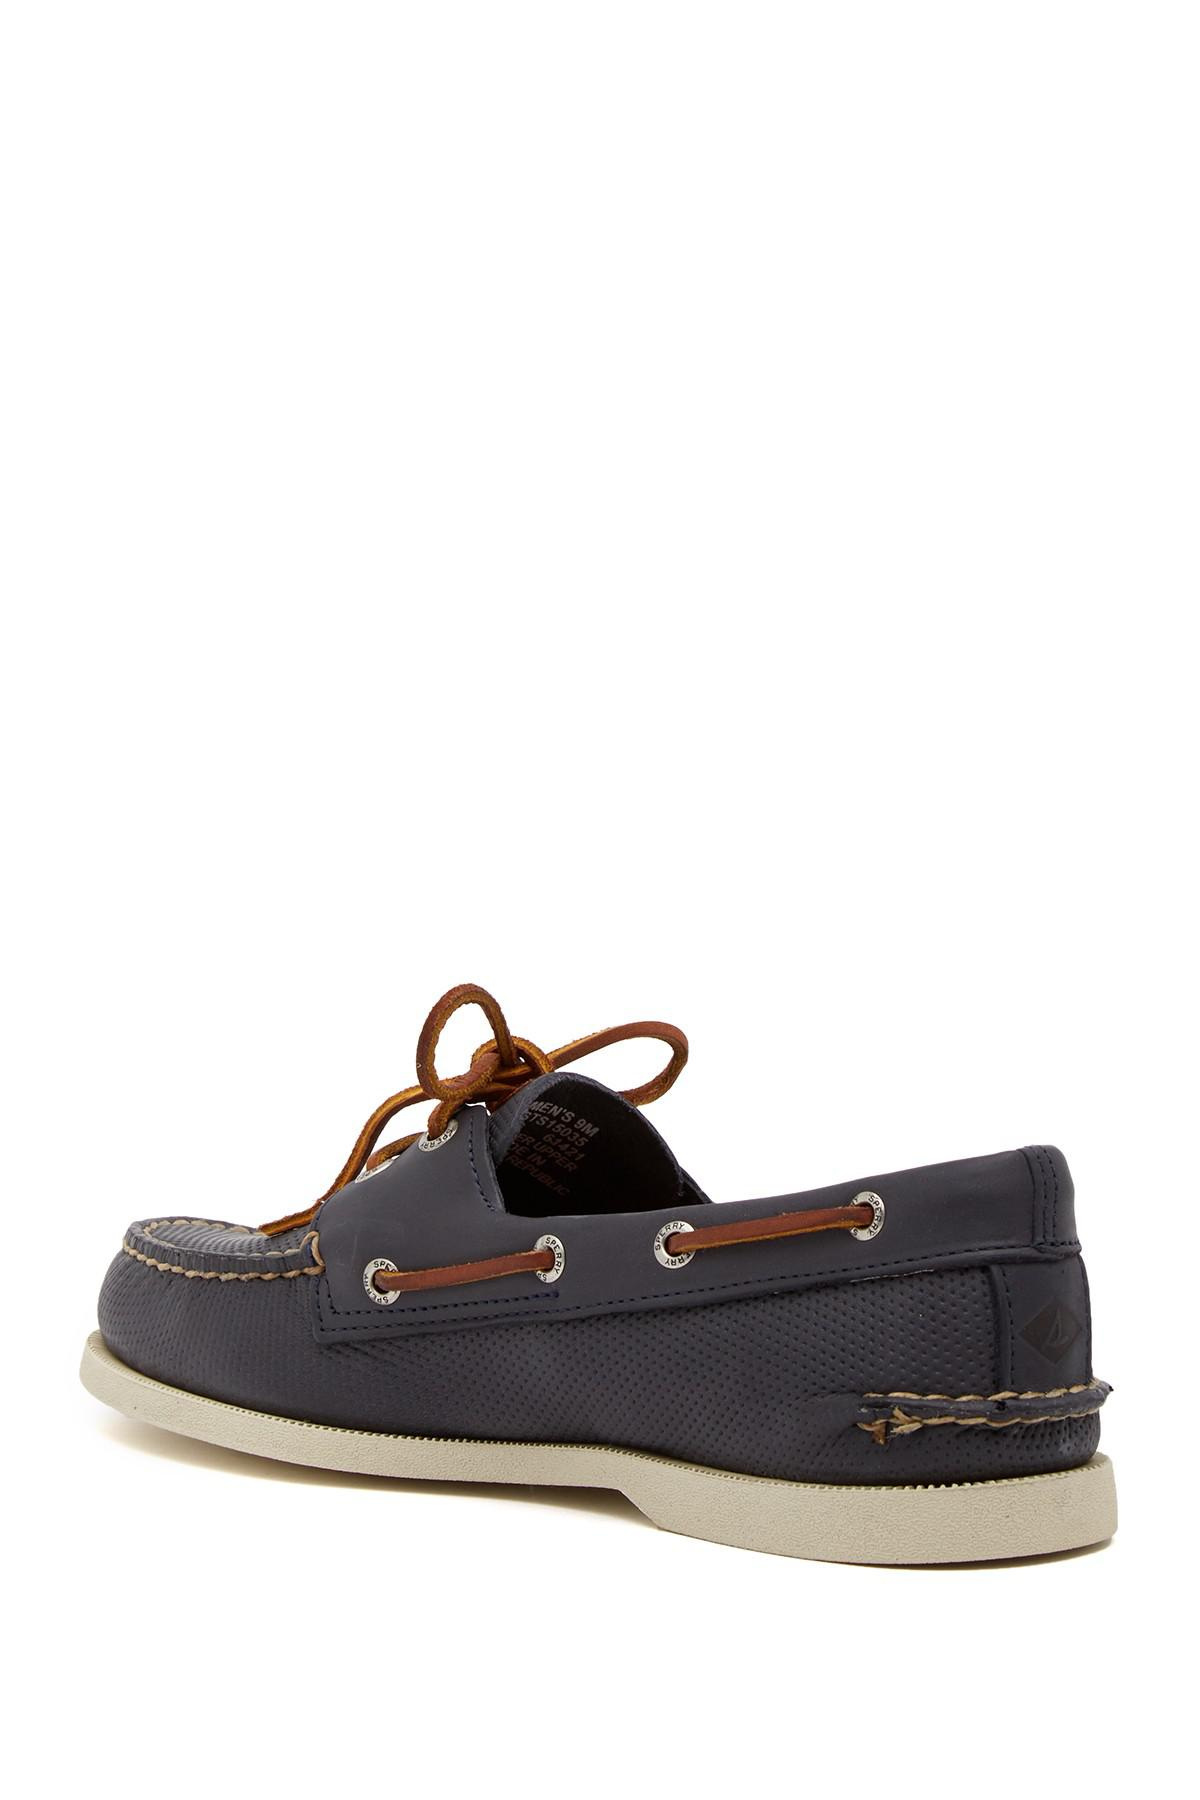 Sperry Authentic Original Water Resistant 2-Eye Boat Shoe D8AXwr8